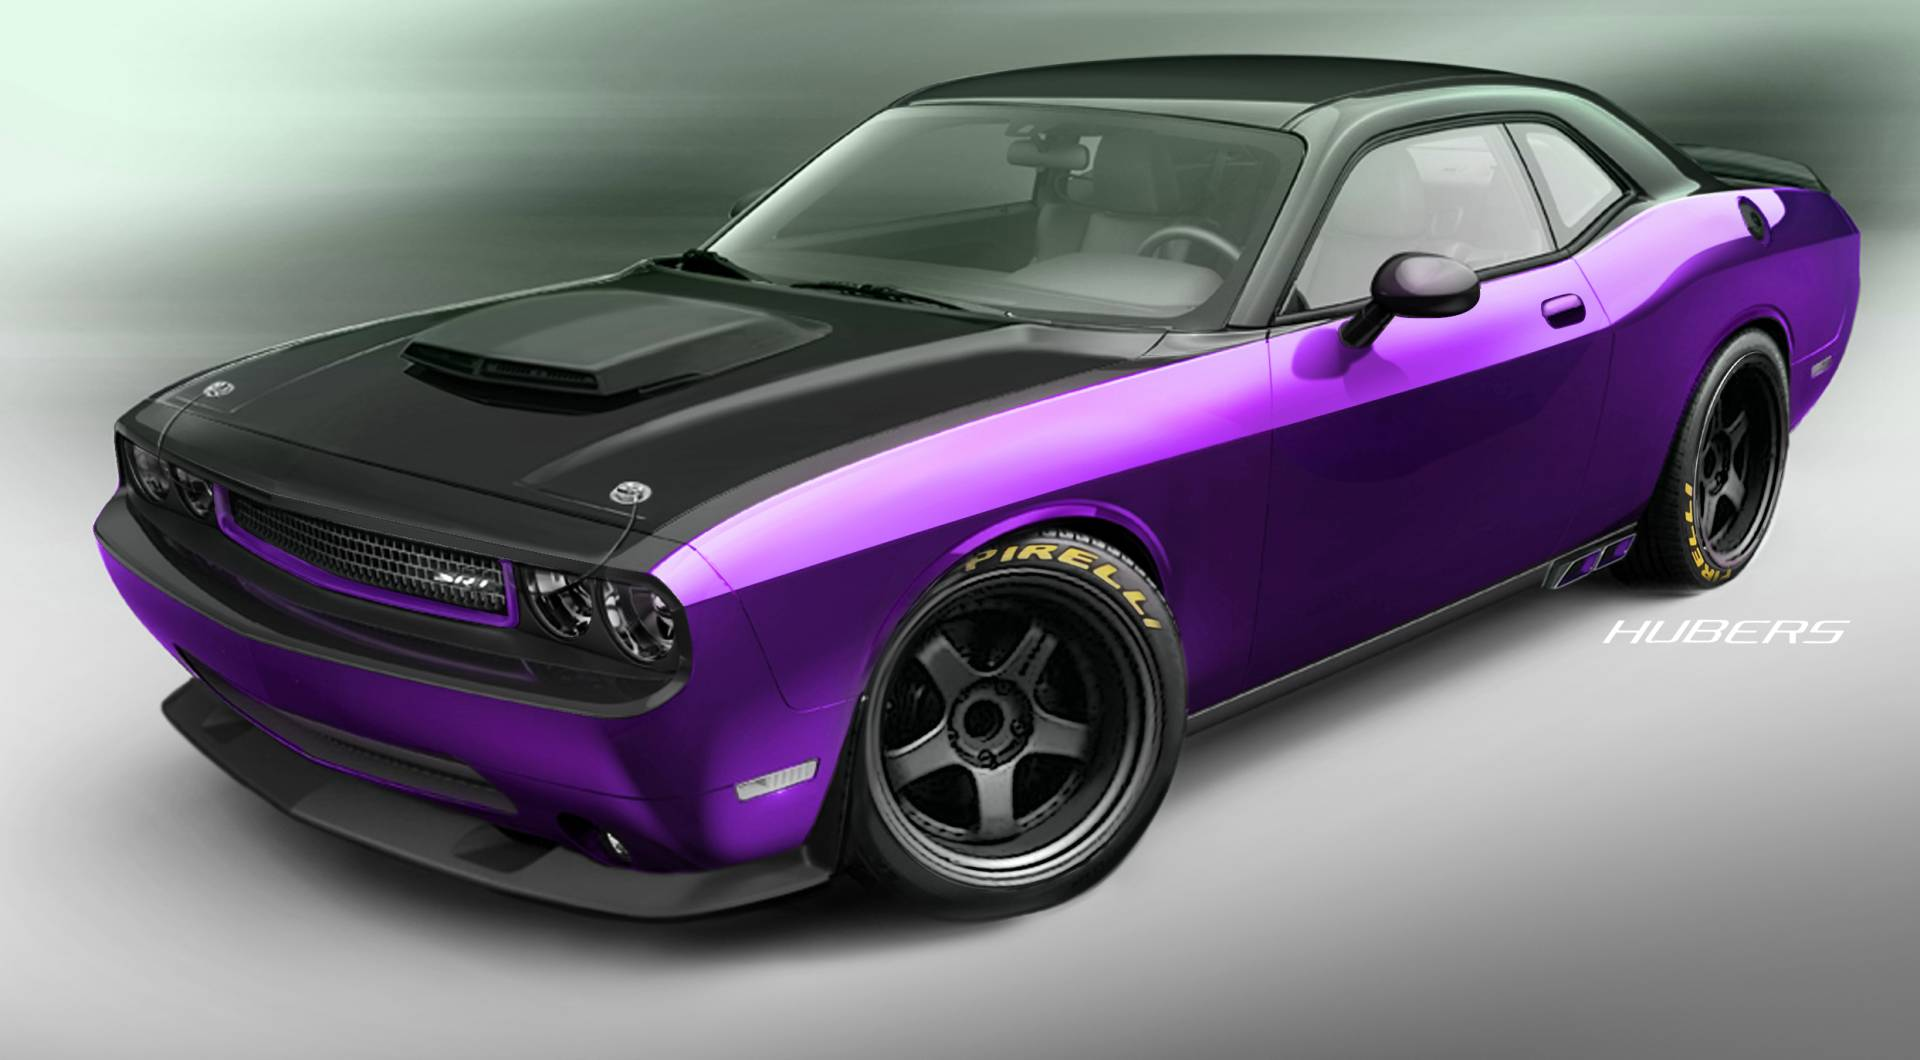 2012 dodge challenger srt8 jeff dunham project ultraviolet news and rh conceptcarz com 2012 dodge challenger sxt owners manual 2012 dodge challenger sxt owners manual